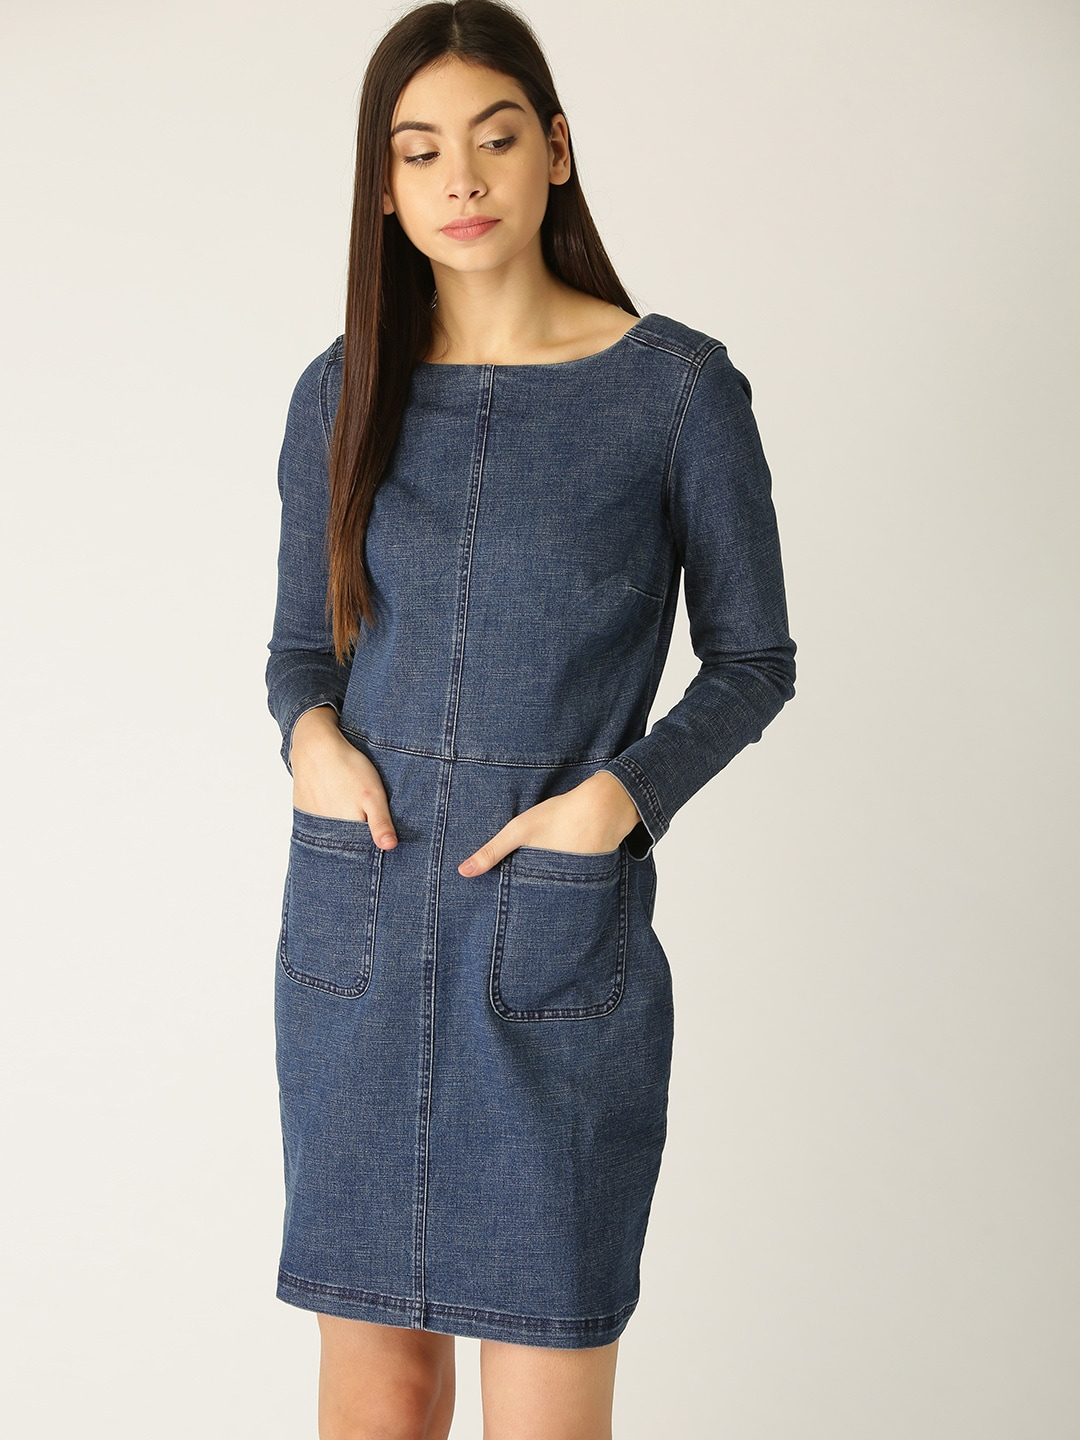 7d488b77eb1 Denim Dresses - Buy Denim Dresses Online in India